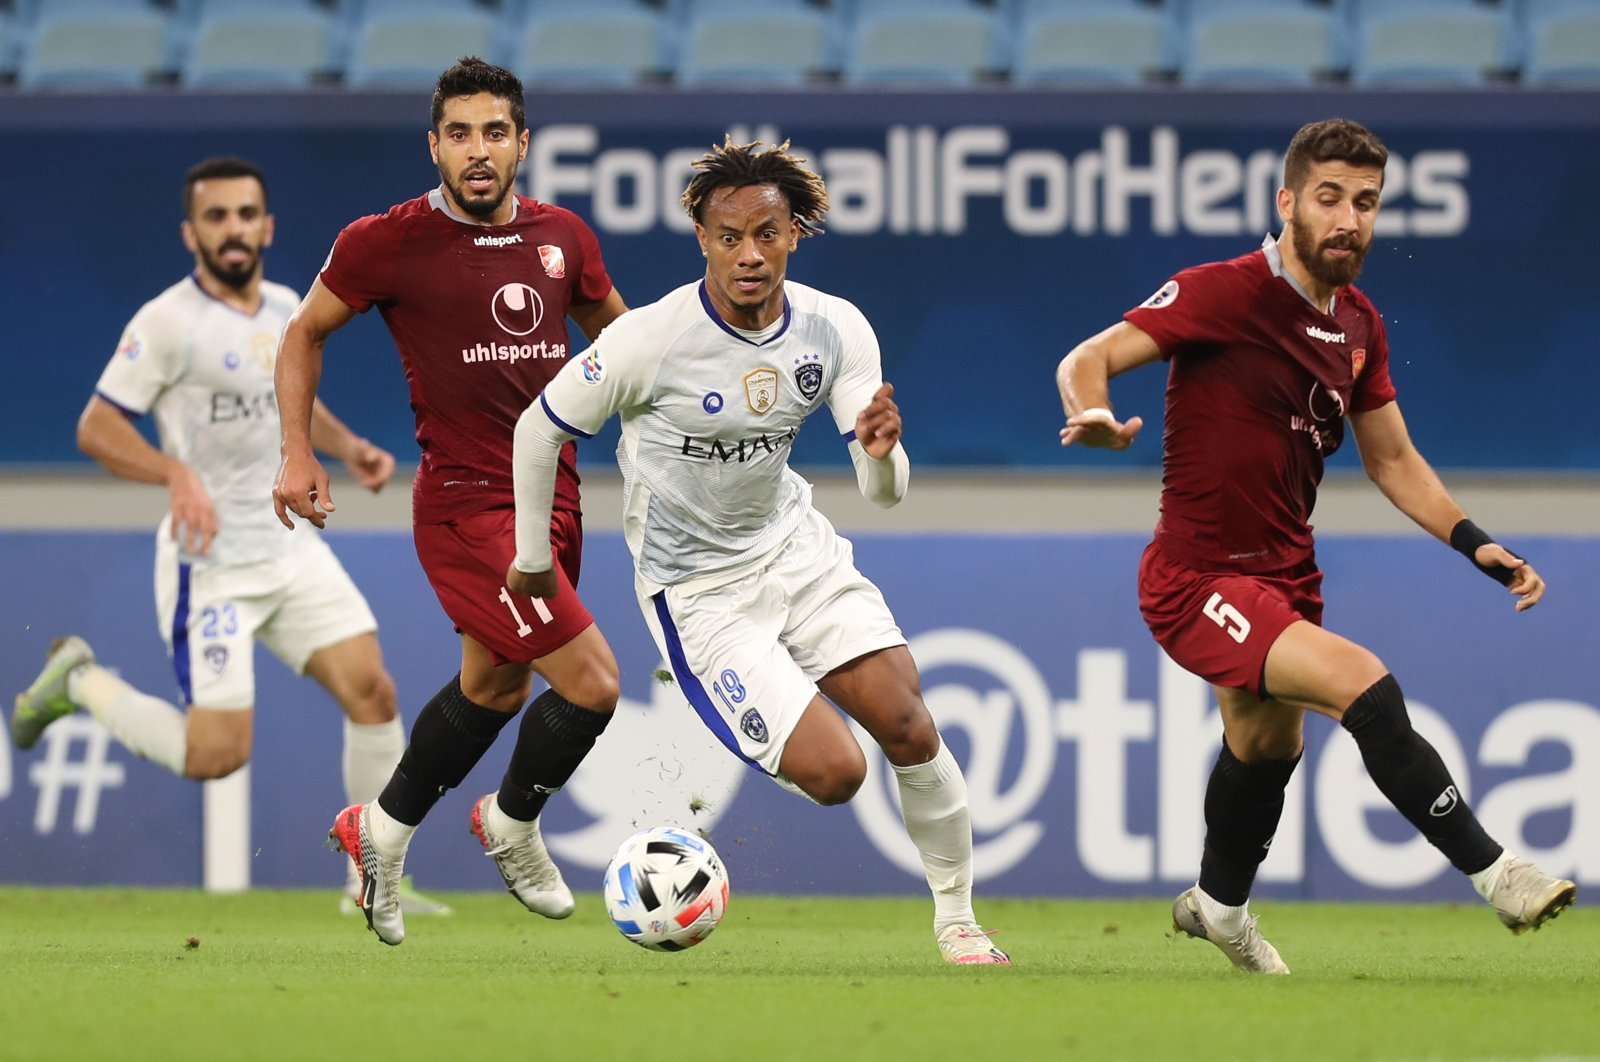 Al-Hilal's Andre Carrillo (C) in action against Shahr Khdro players, in Al Wakrah, Qatar, Sept. 20, 2020. (AFP Photo)